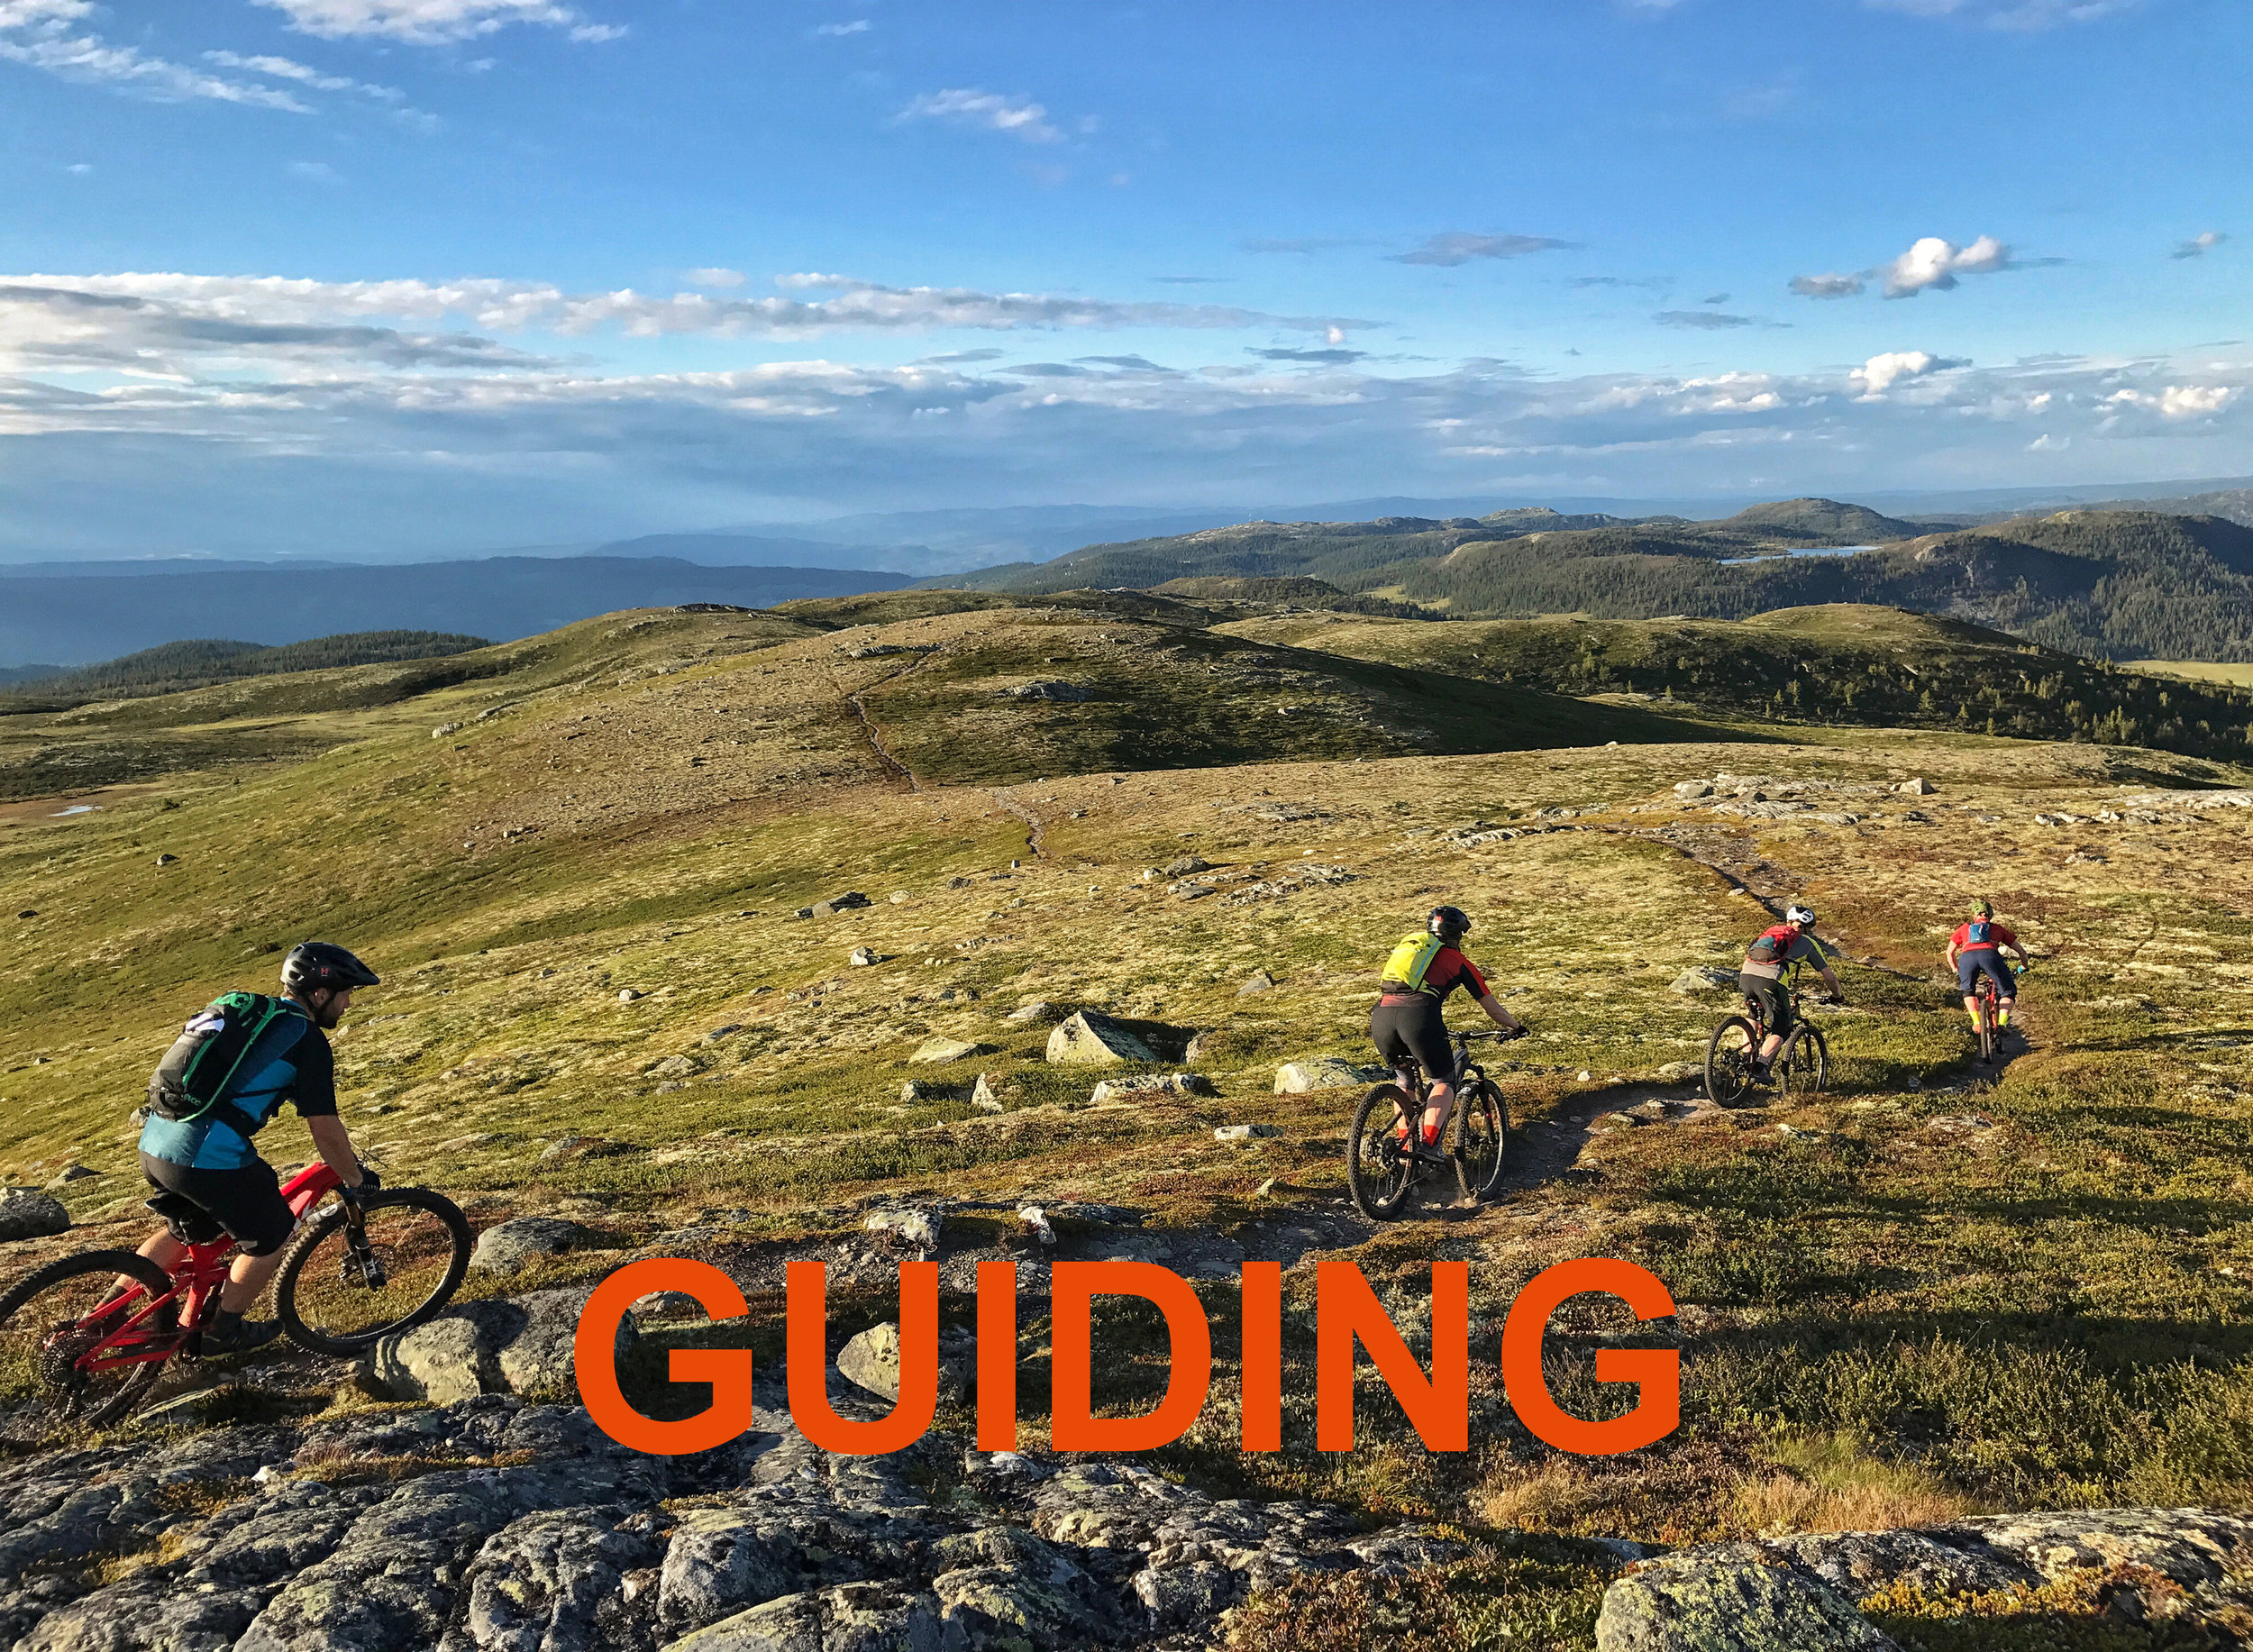 Guiding - Ready to try new trails? We can take you out riding in the mountains or hills.